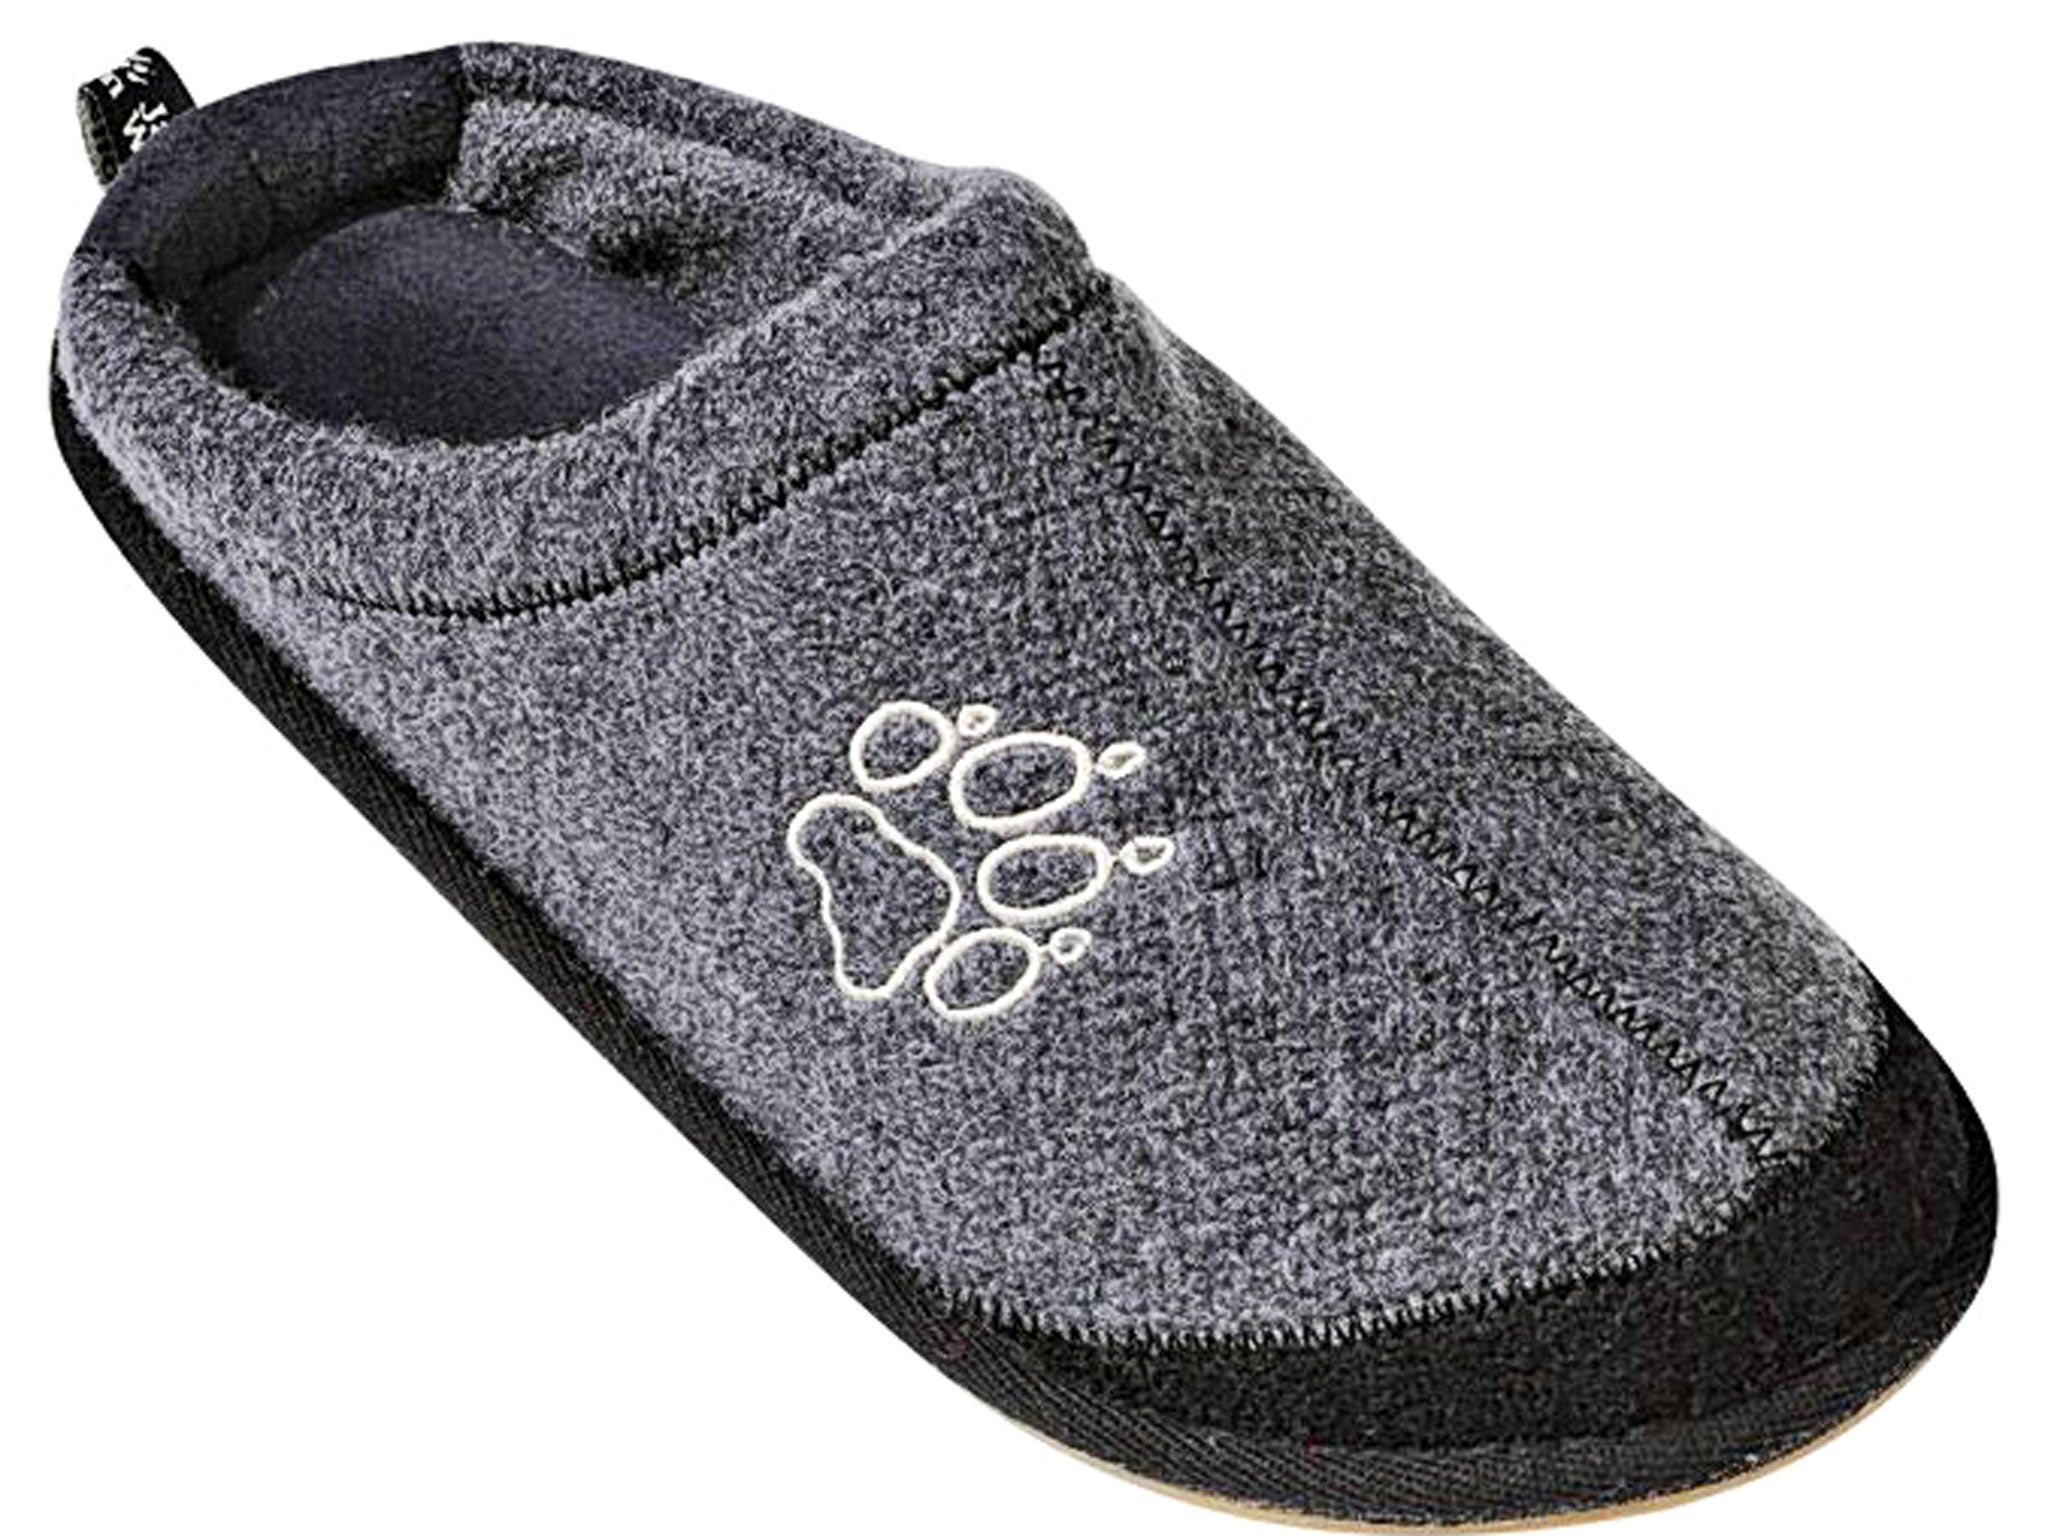 045c05c2570 The 10 Best slippers | The Independent